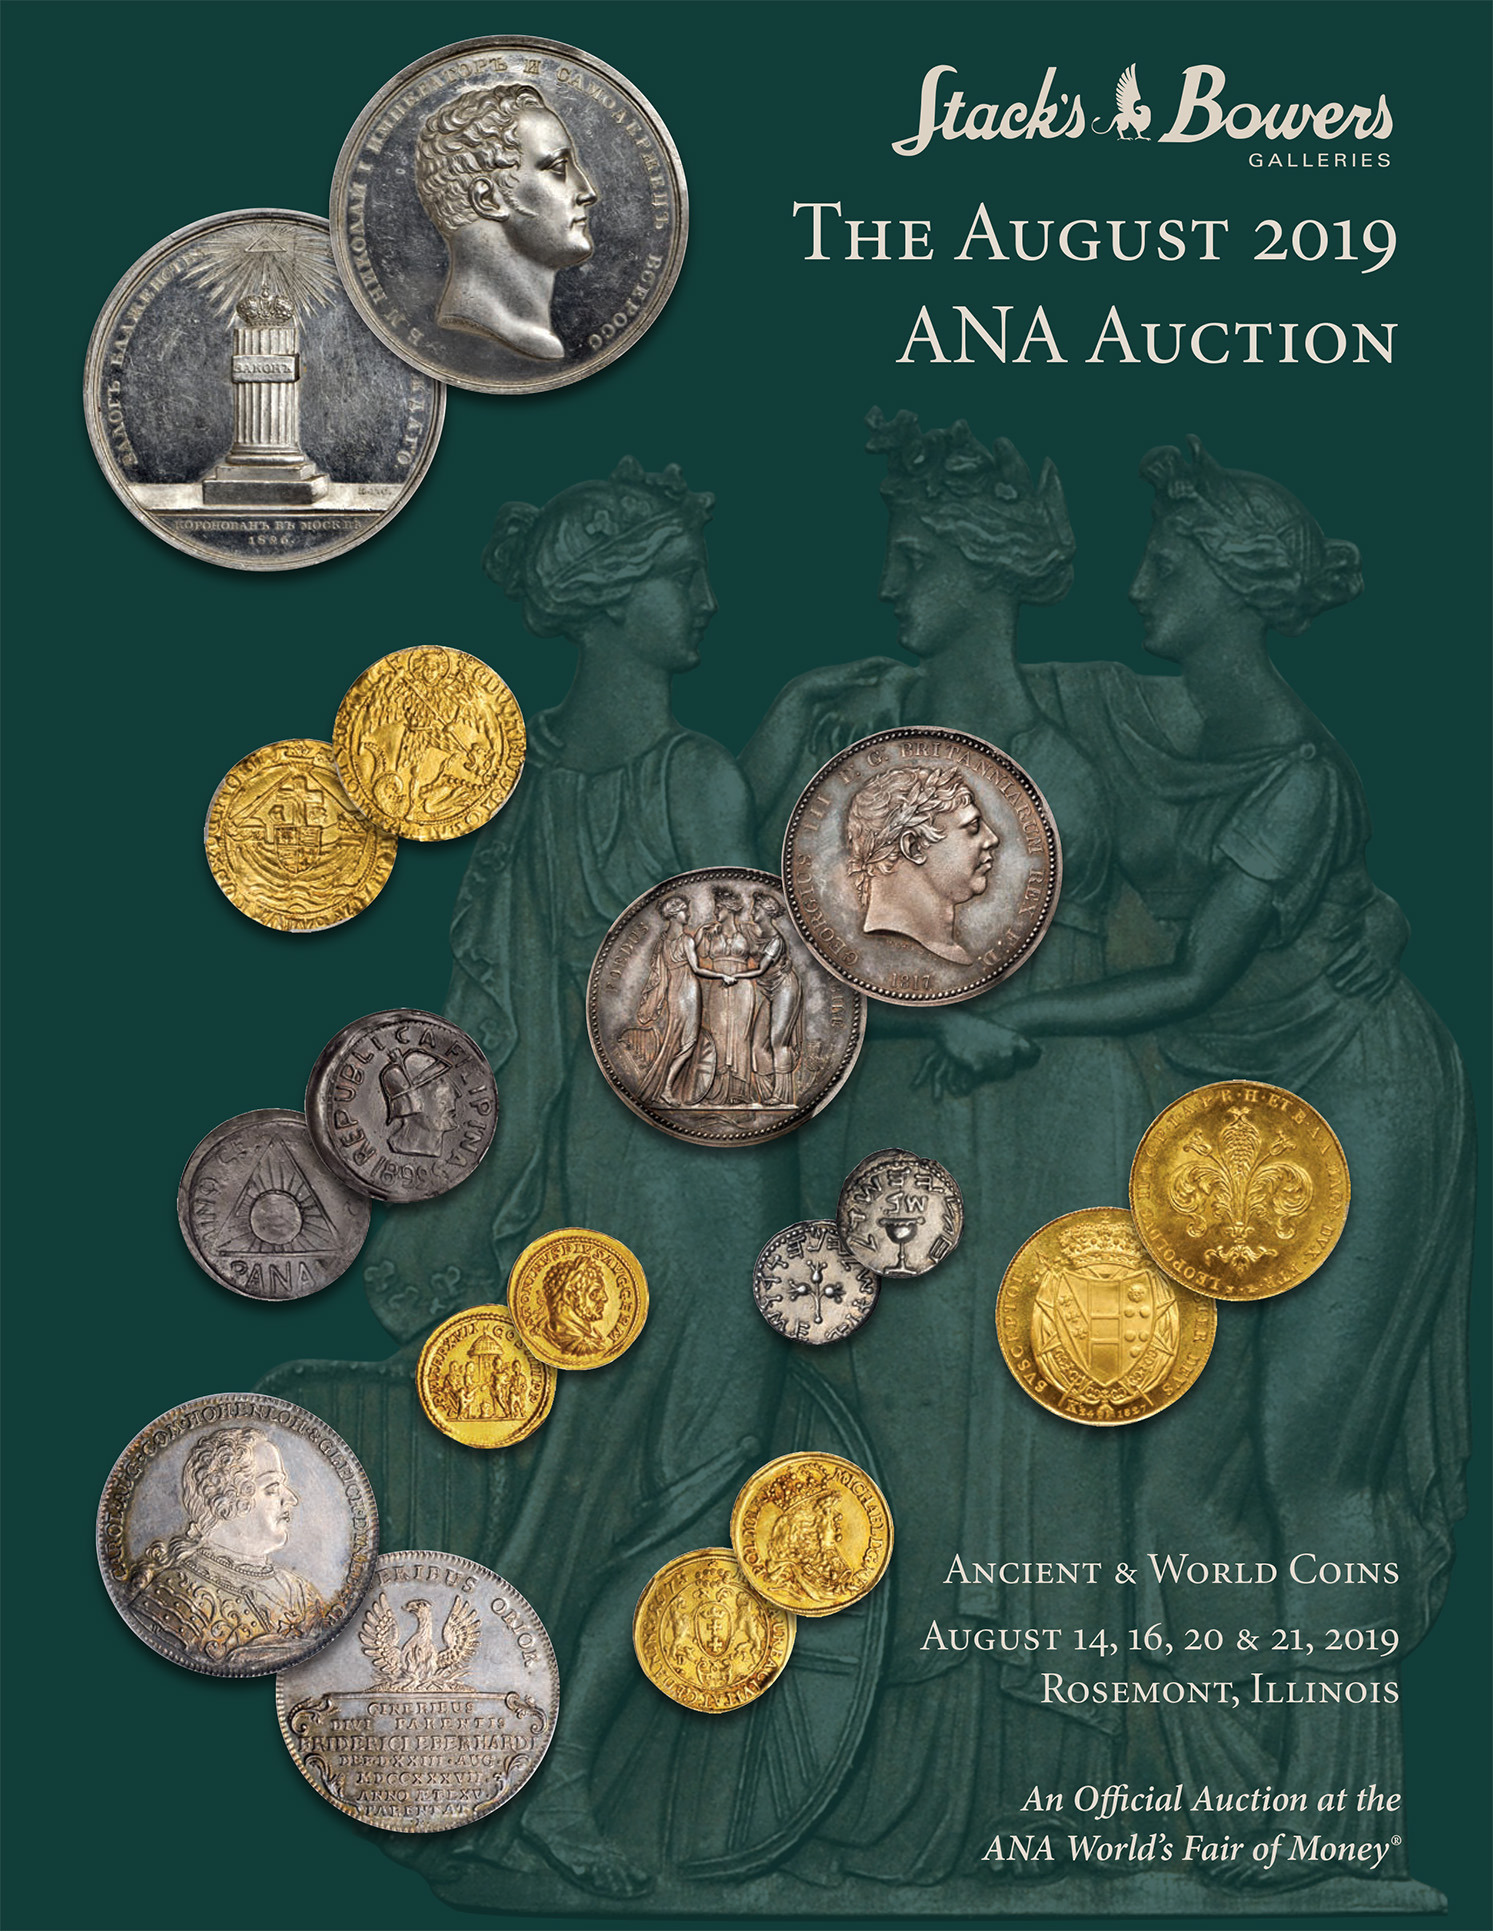 The August 2019 ANA Ancient & World Coins Auction